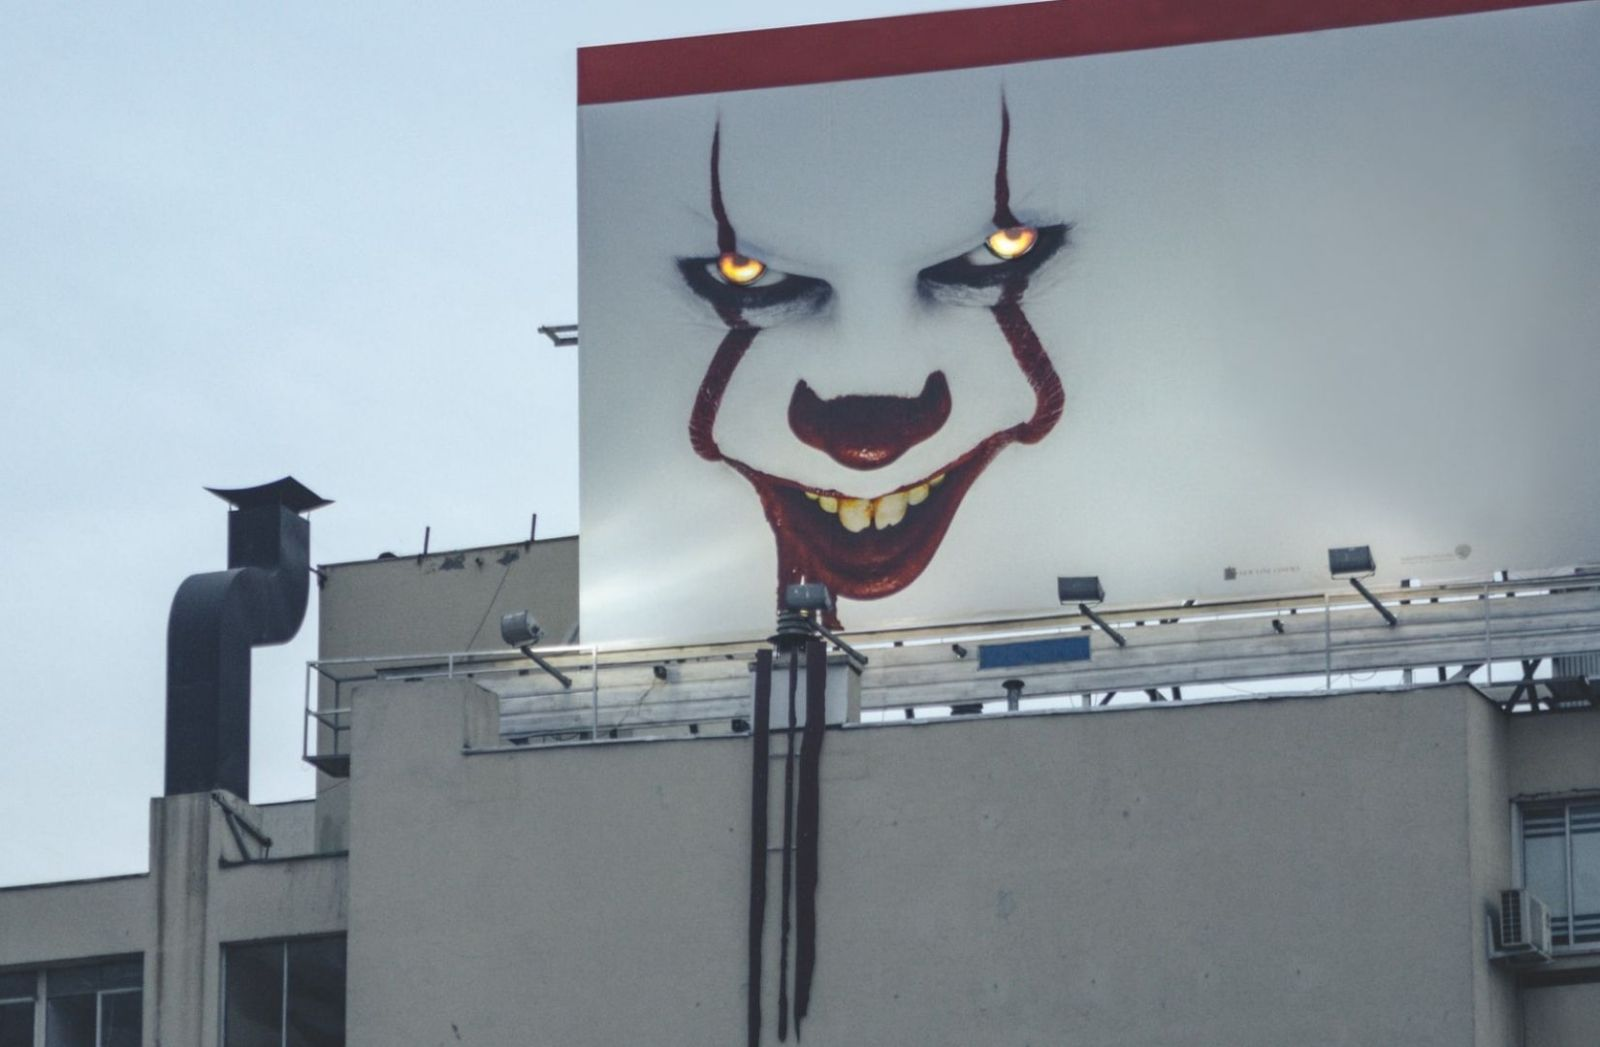 Billboard of Pennywise from IT 2 for Halloween 2019 in Santiago, Chile. (Foto: Luis Villasmil, Unsplash.com)